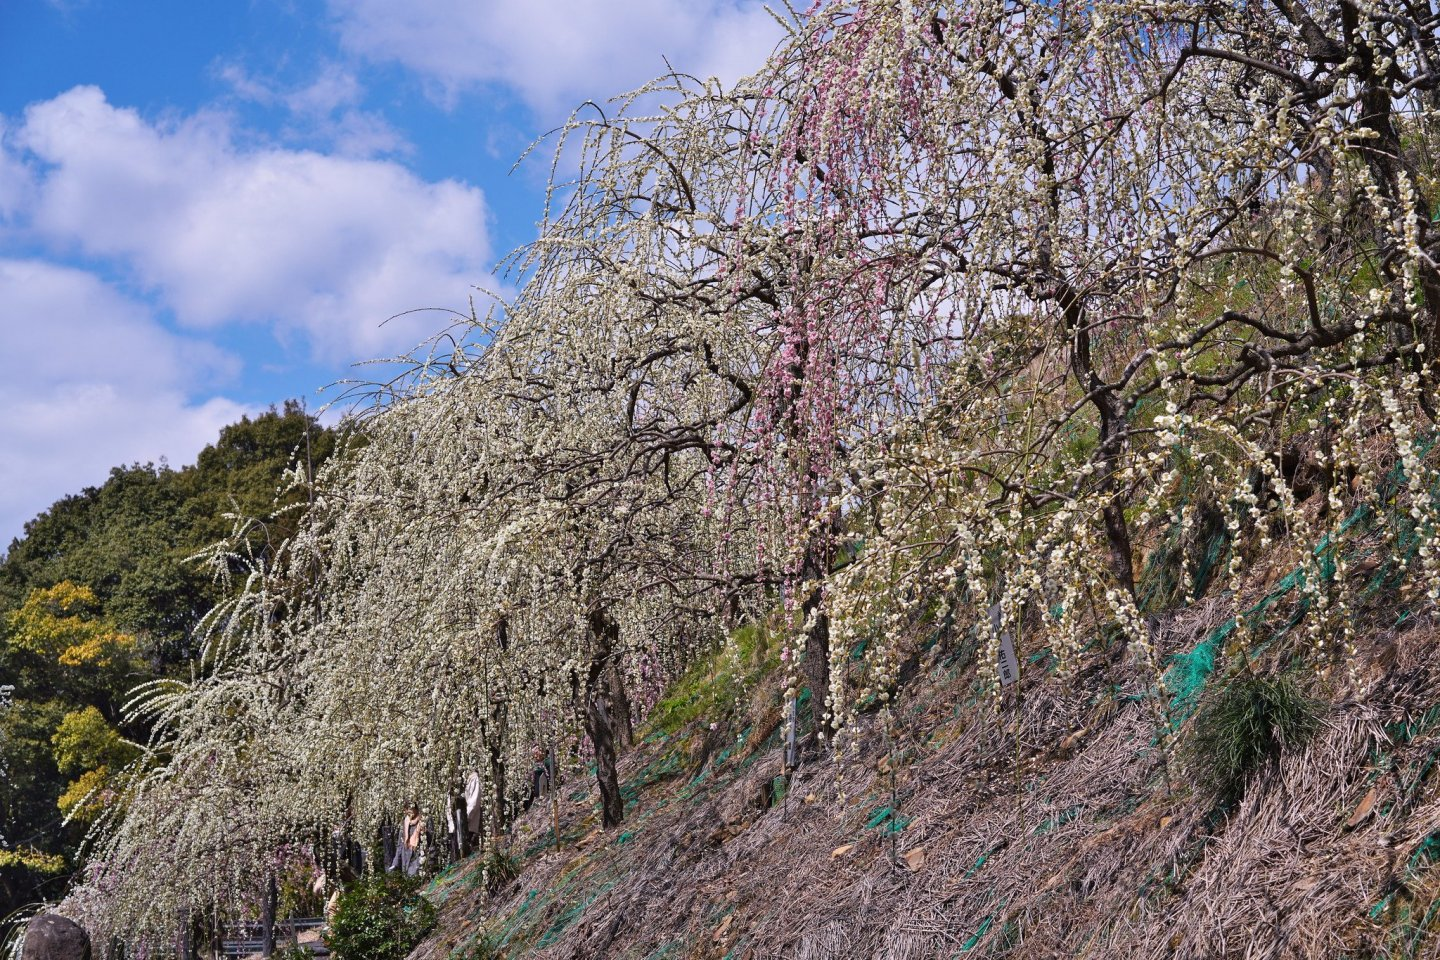 Weeping plums at Oagata Shrine